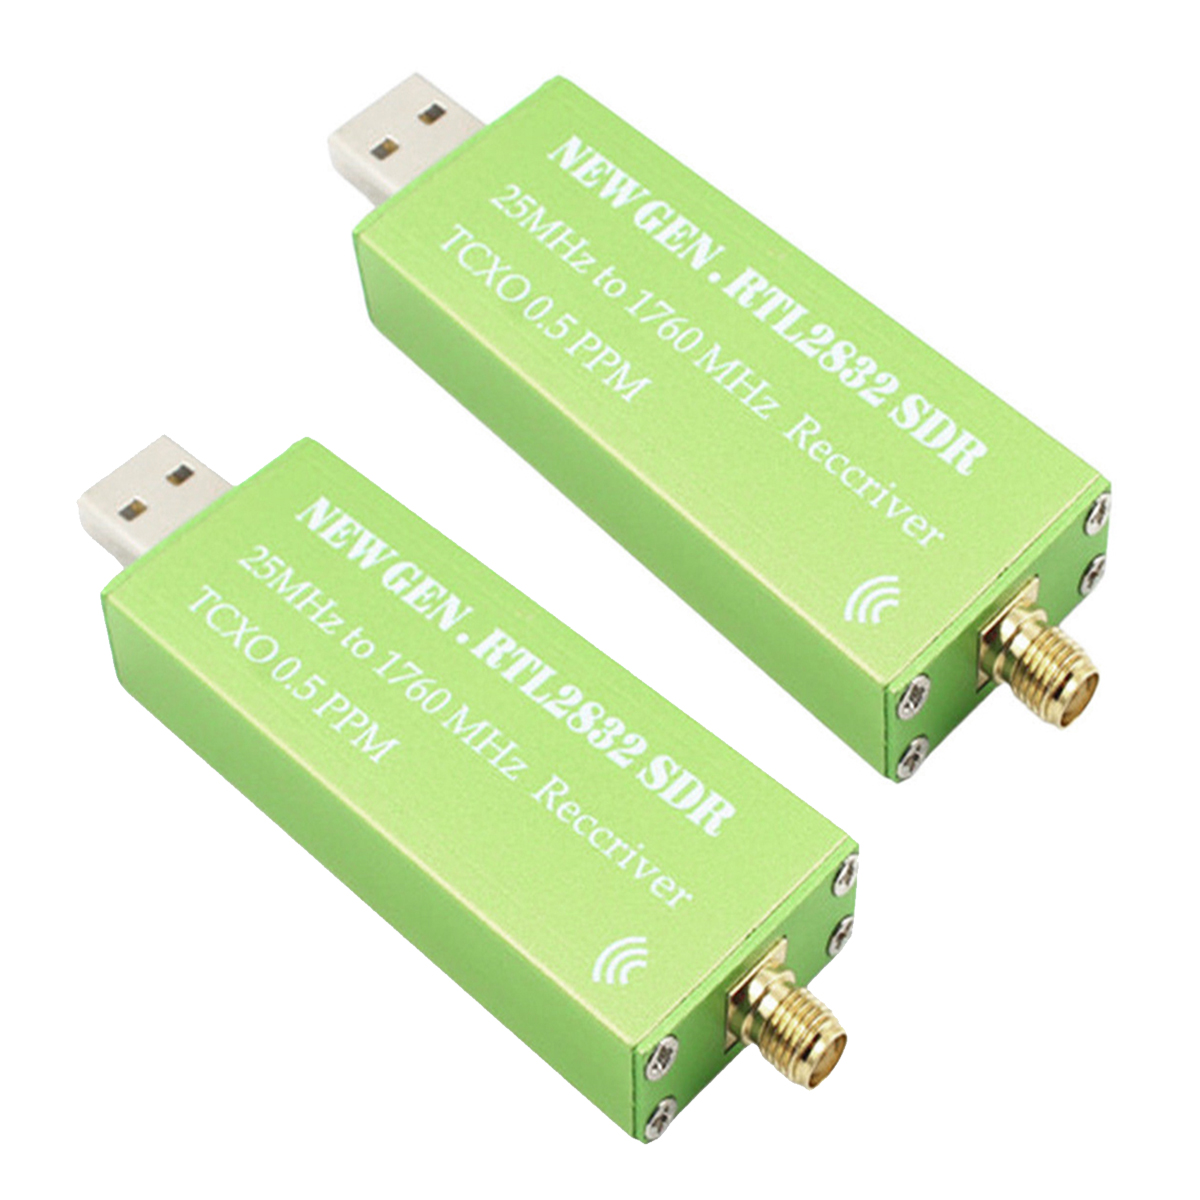 USB Adapter RTL-SDR RTL2832U + R820T2+ 1Ppm TCXO TV Tuner Stick Receiver 2 100khz 1 7ghz full band rtl sdr software receiver aerial band shortwave band rtl2832u r820t2 tuner tv receivers